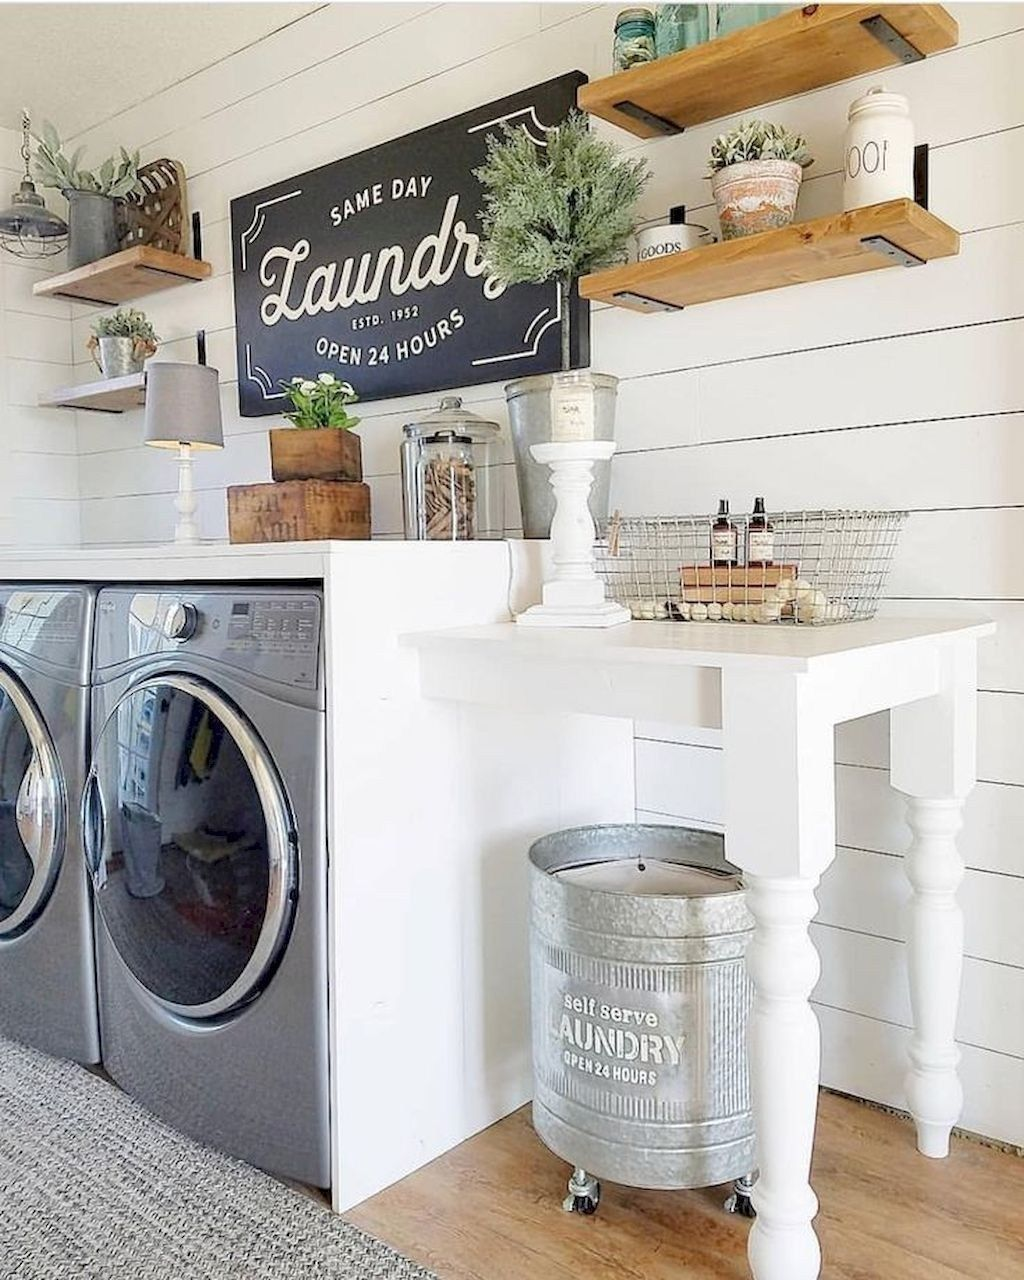 Best Small Laundry Room Decorating Ideas To Inspire You 29